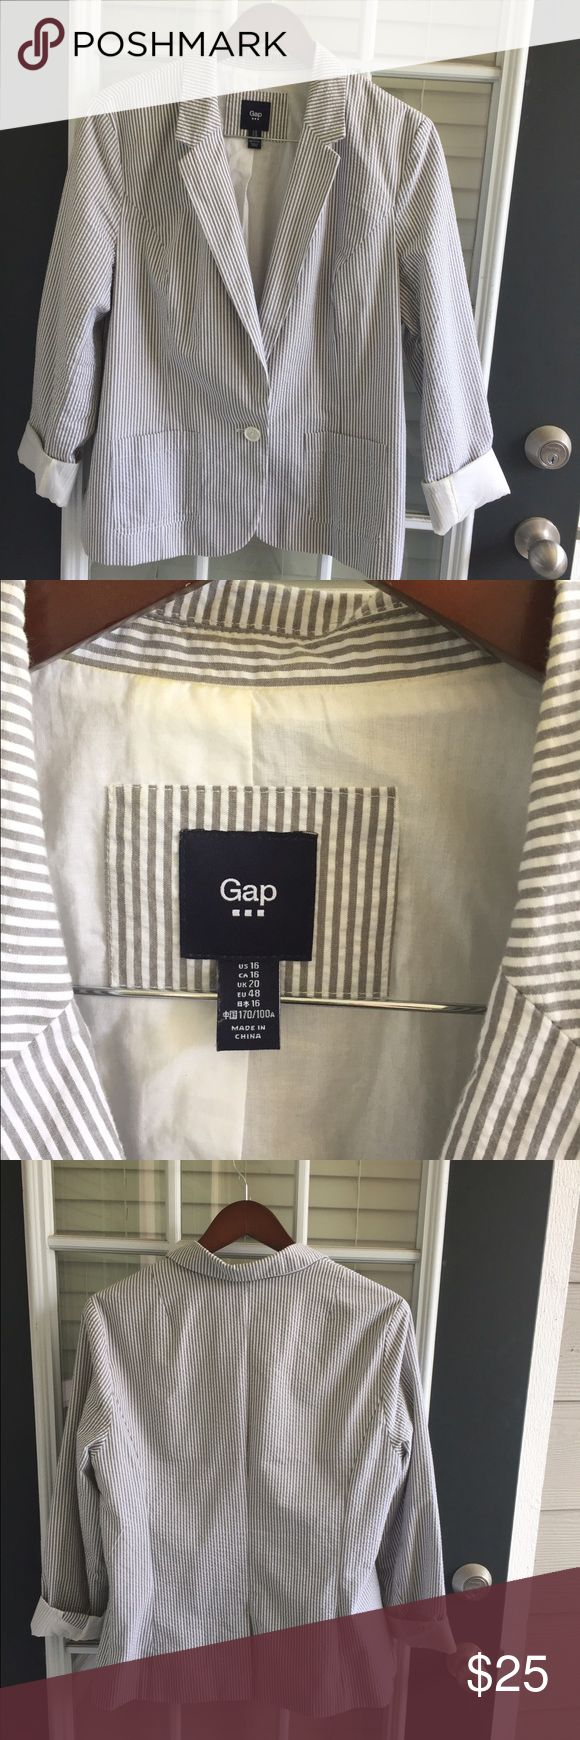 Gap Jacket. Quickly perk up an outfit with this adorable striped jacket. GAP Jackets & Coats Blazers